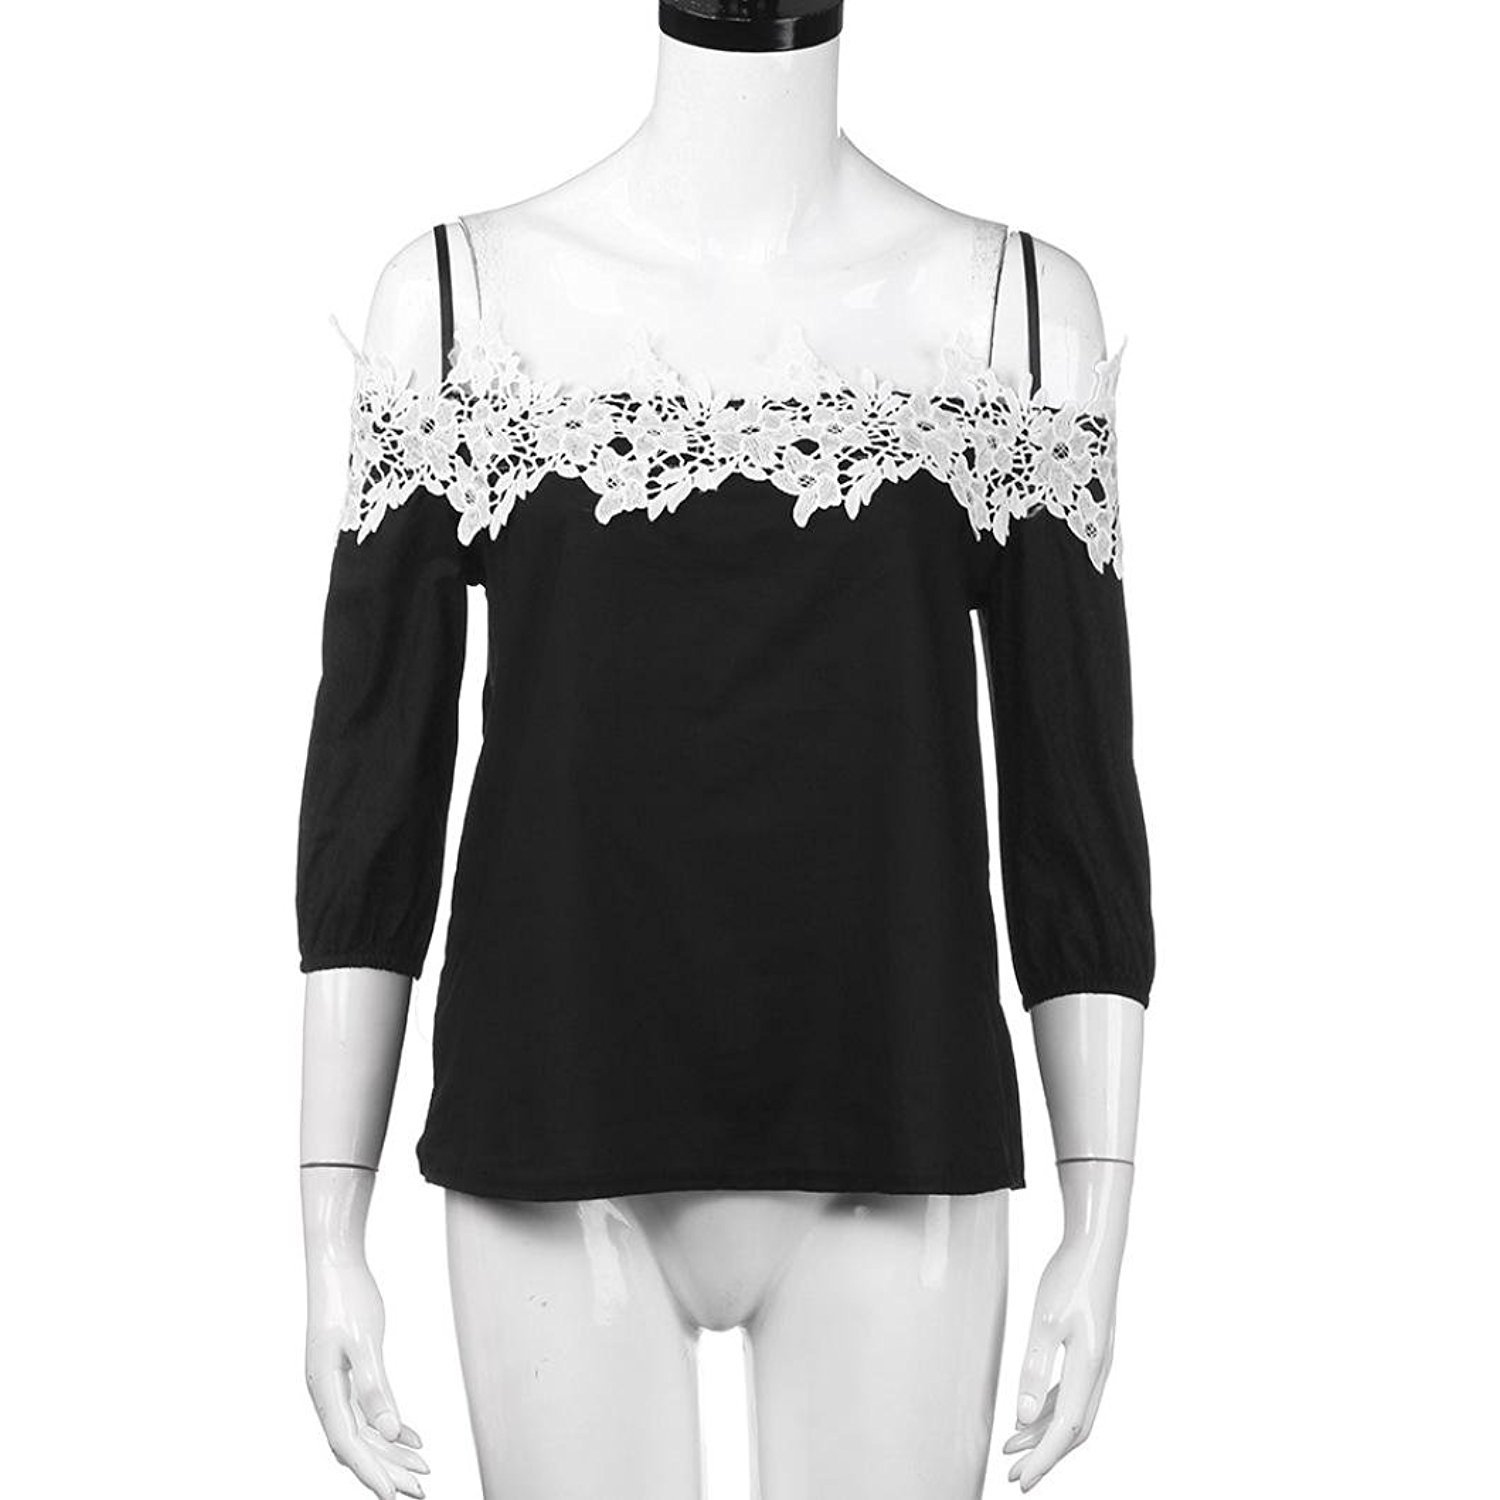 e57612834b0 HARRYSTORE Womans Bardot Tops, Womens Off Shoulder Lace T-Shirt Top Ladies  Tops Tee Blouse: Amazon.co.uk: Clothing